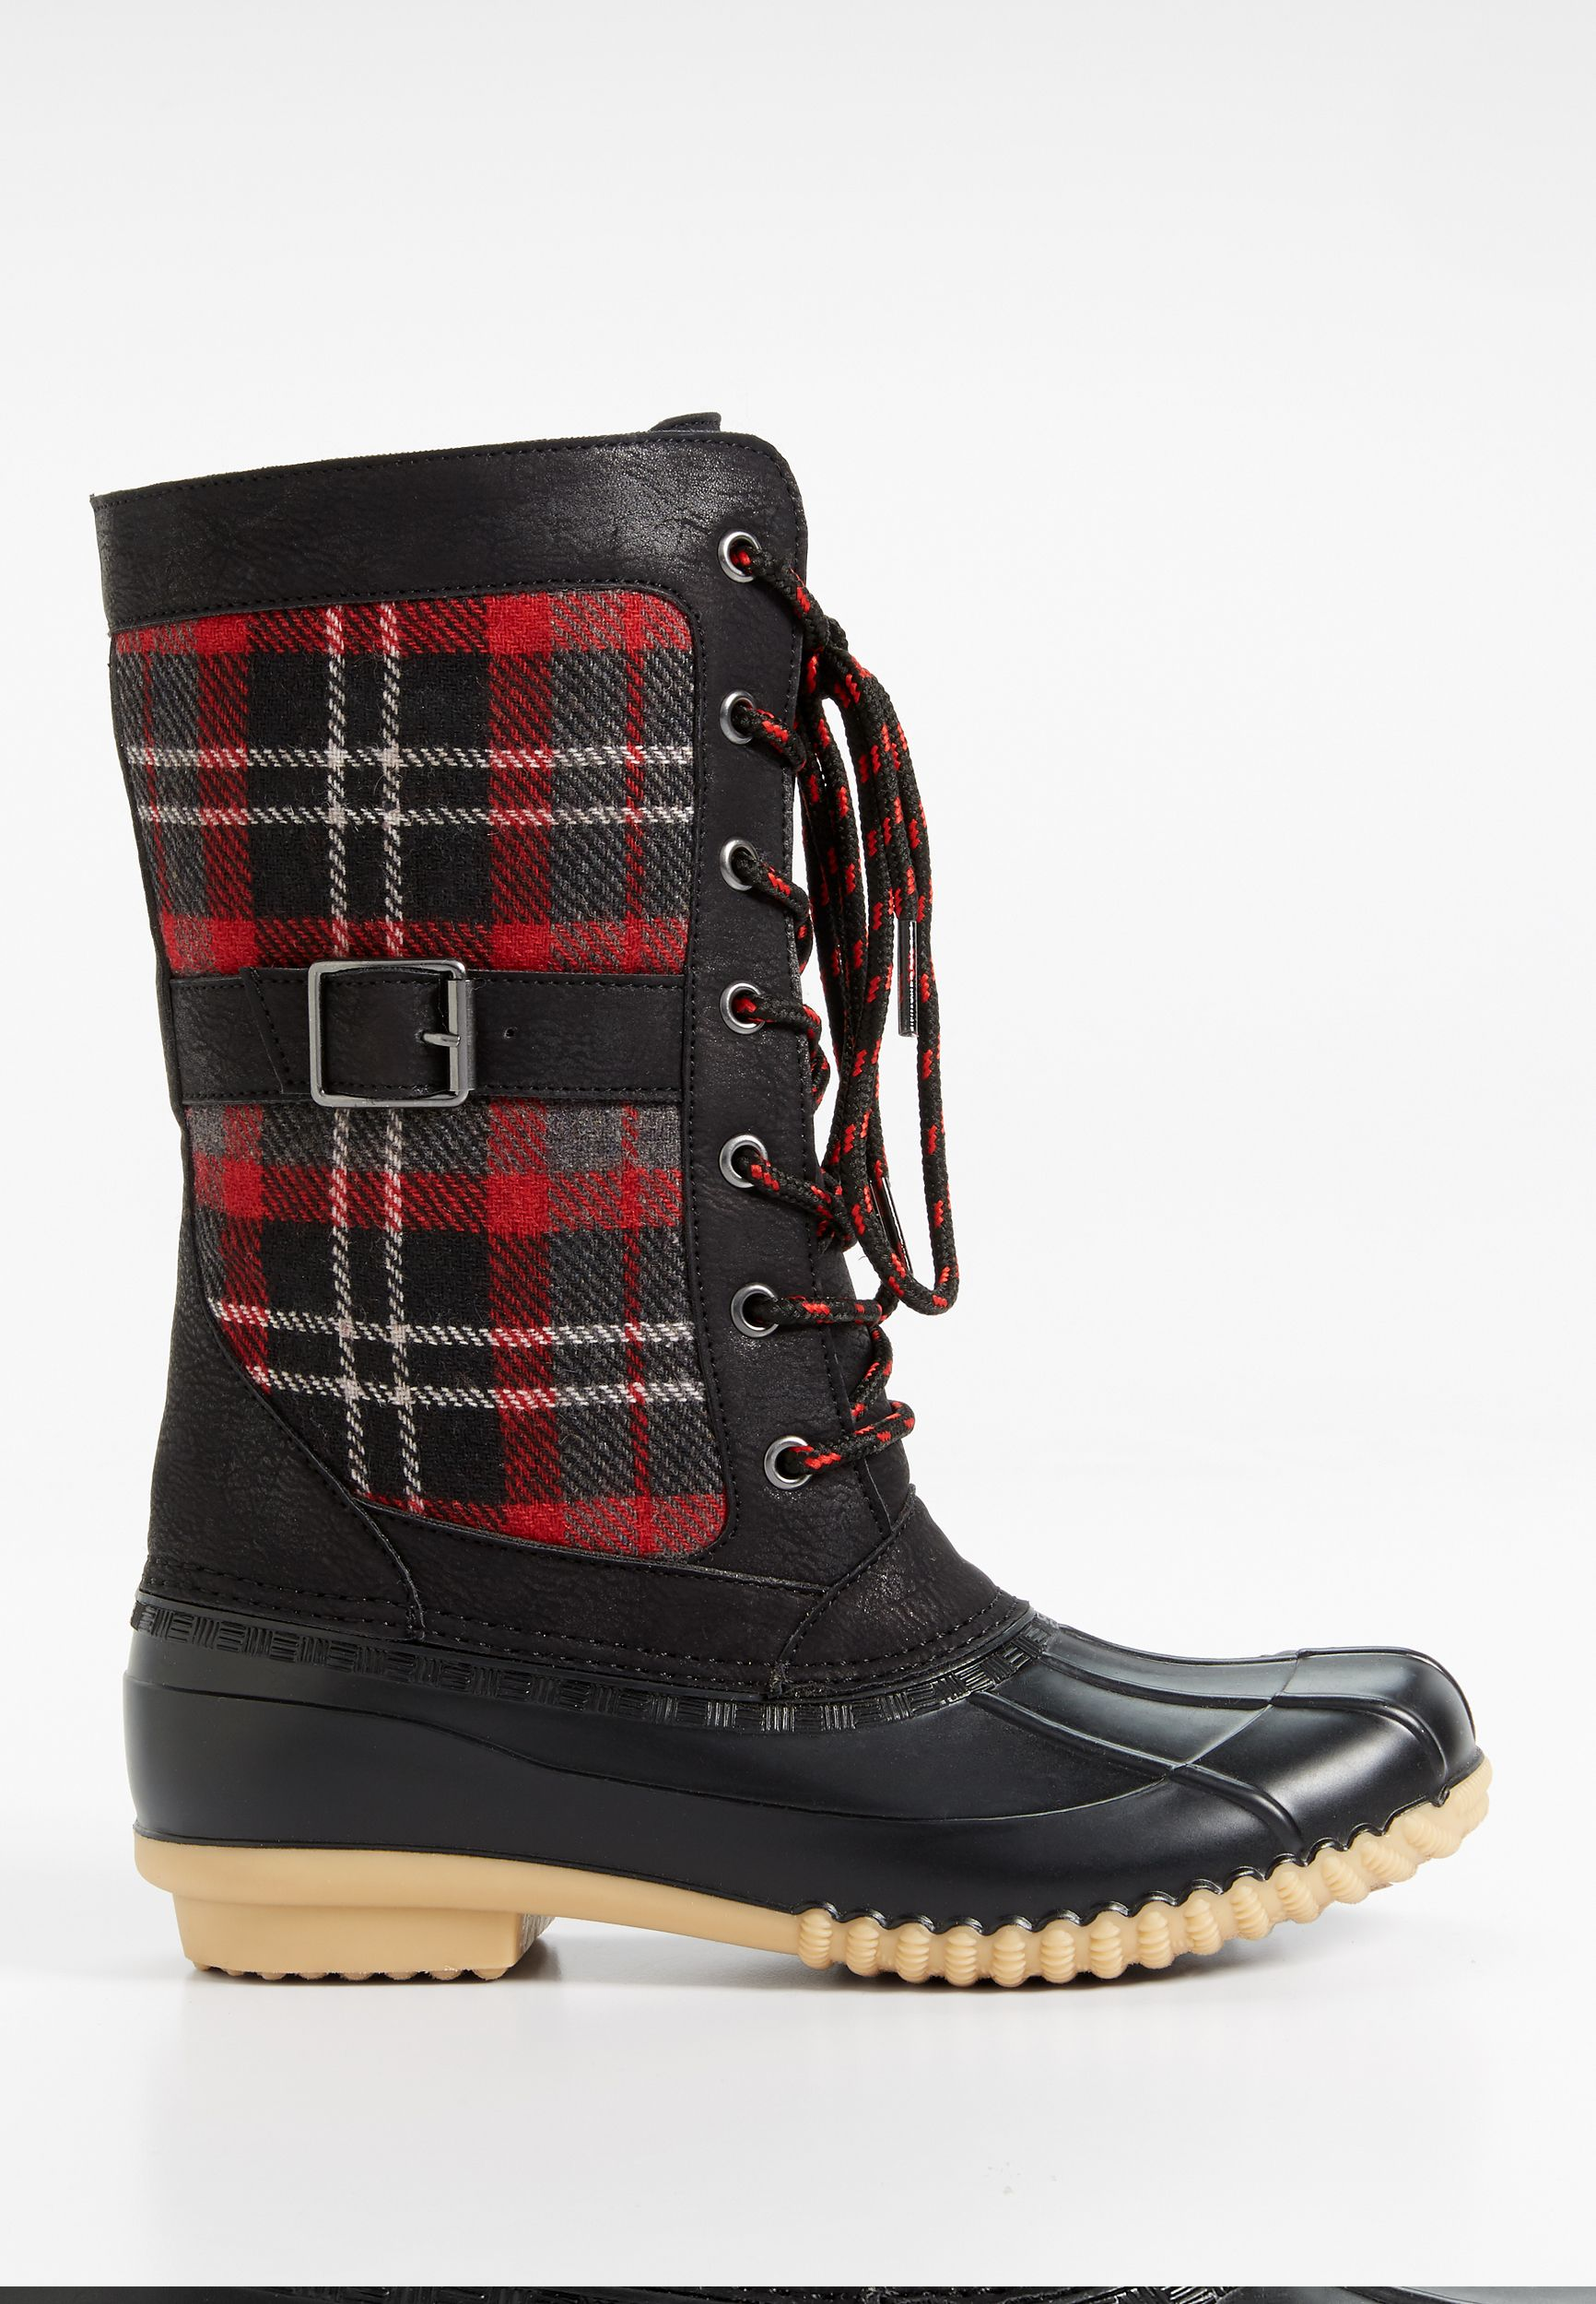 3149b02e8 Whitney plaid duck boot | MAURICES | Boots, Duck boots, Plaid